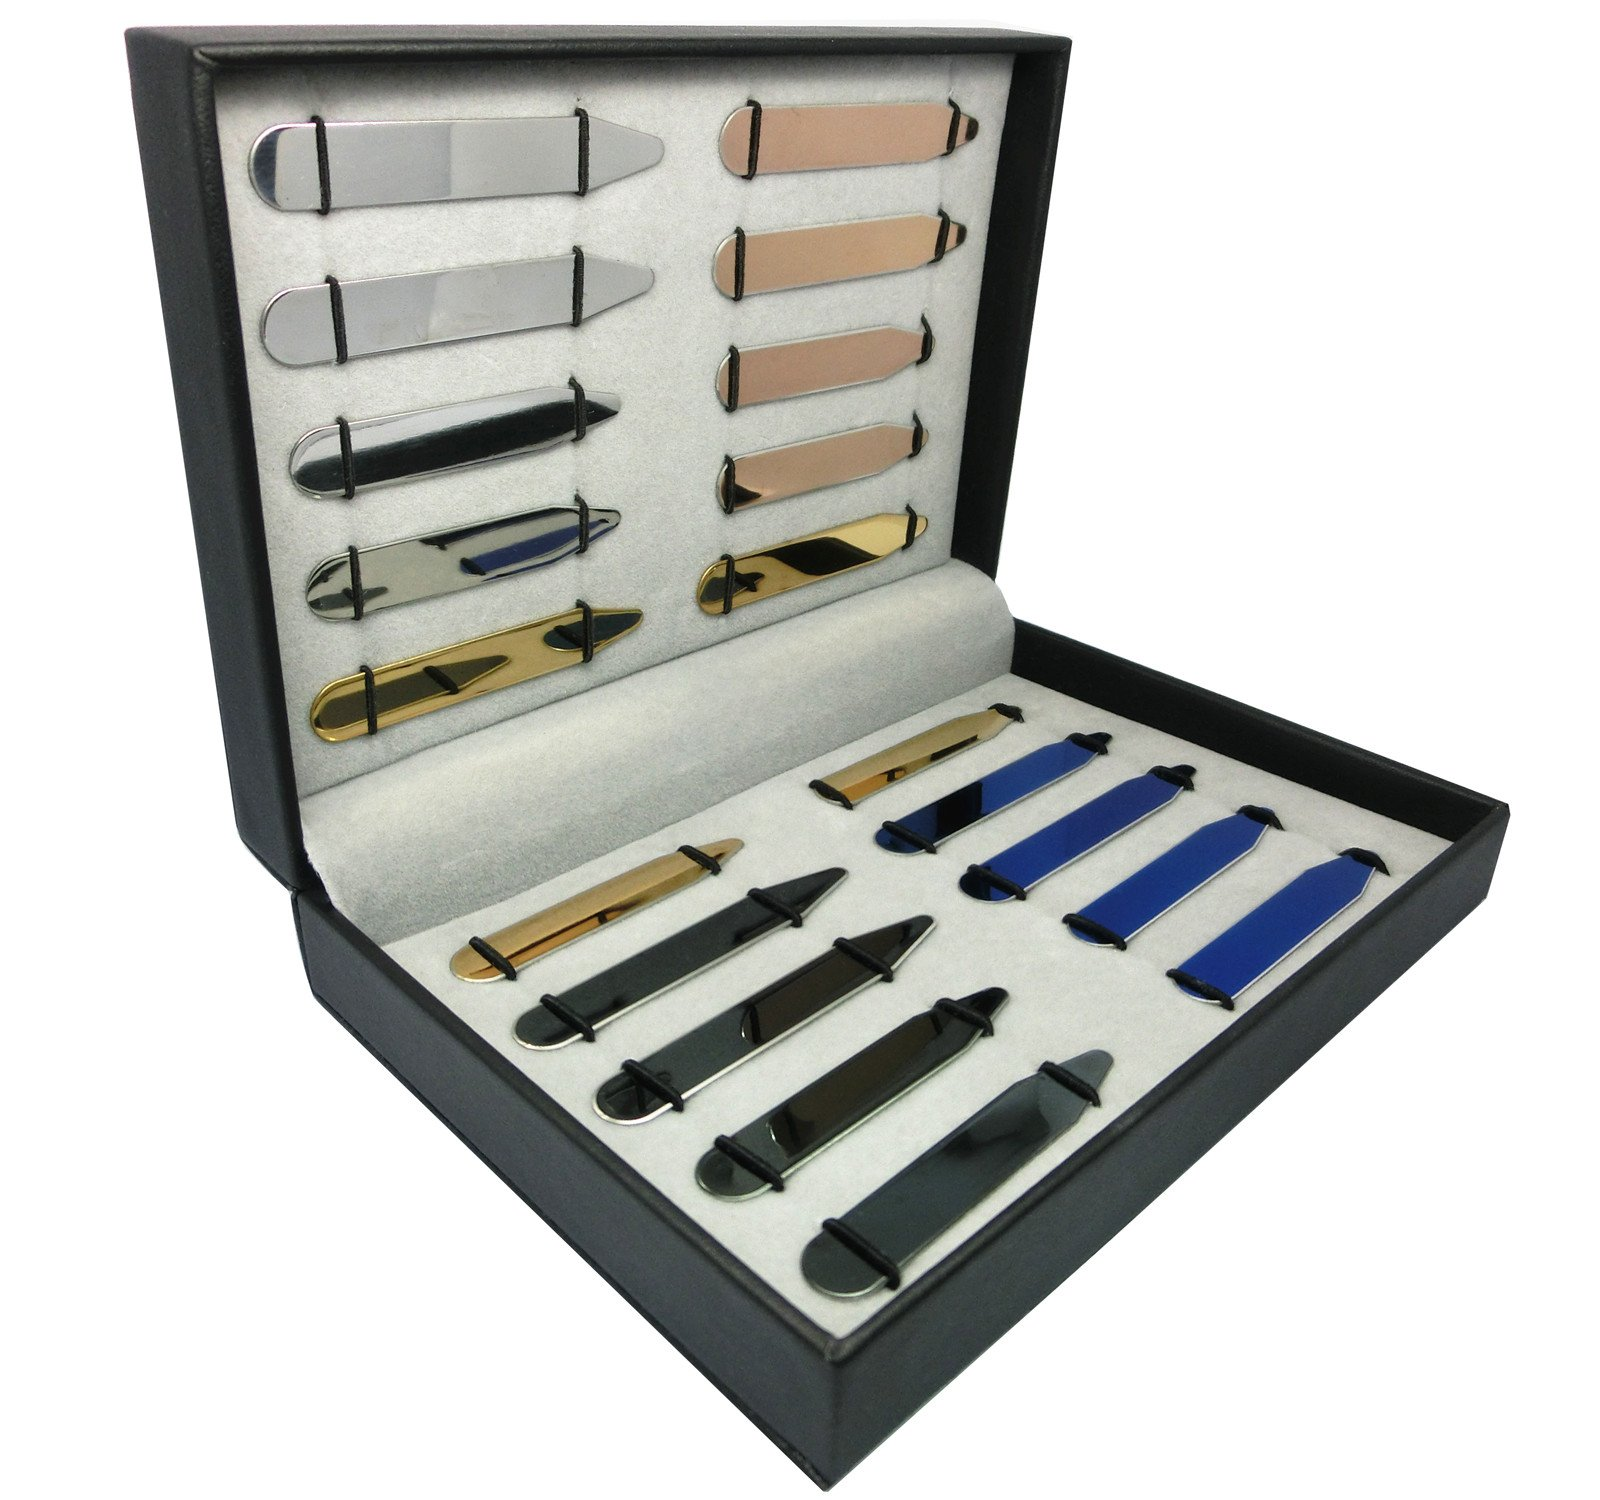 Shang Zun 20 pcs Stainless Steel Collar Stays 5 Colors in a Box - 5 Sizes